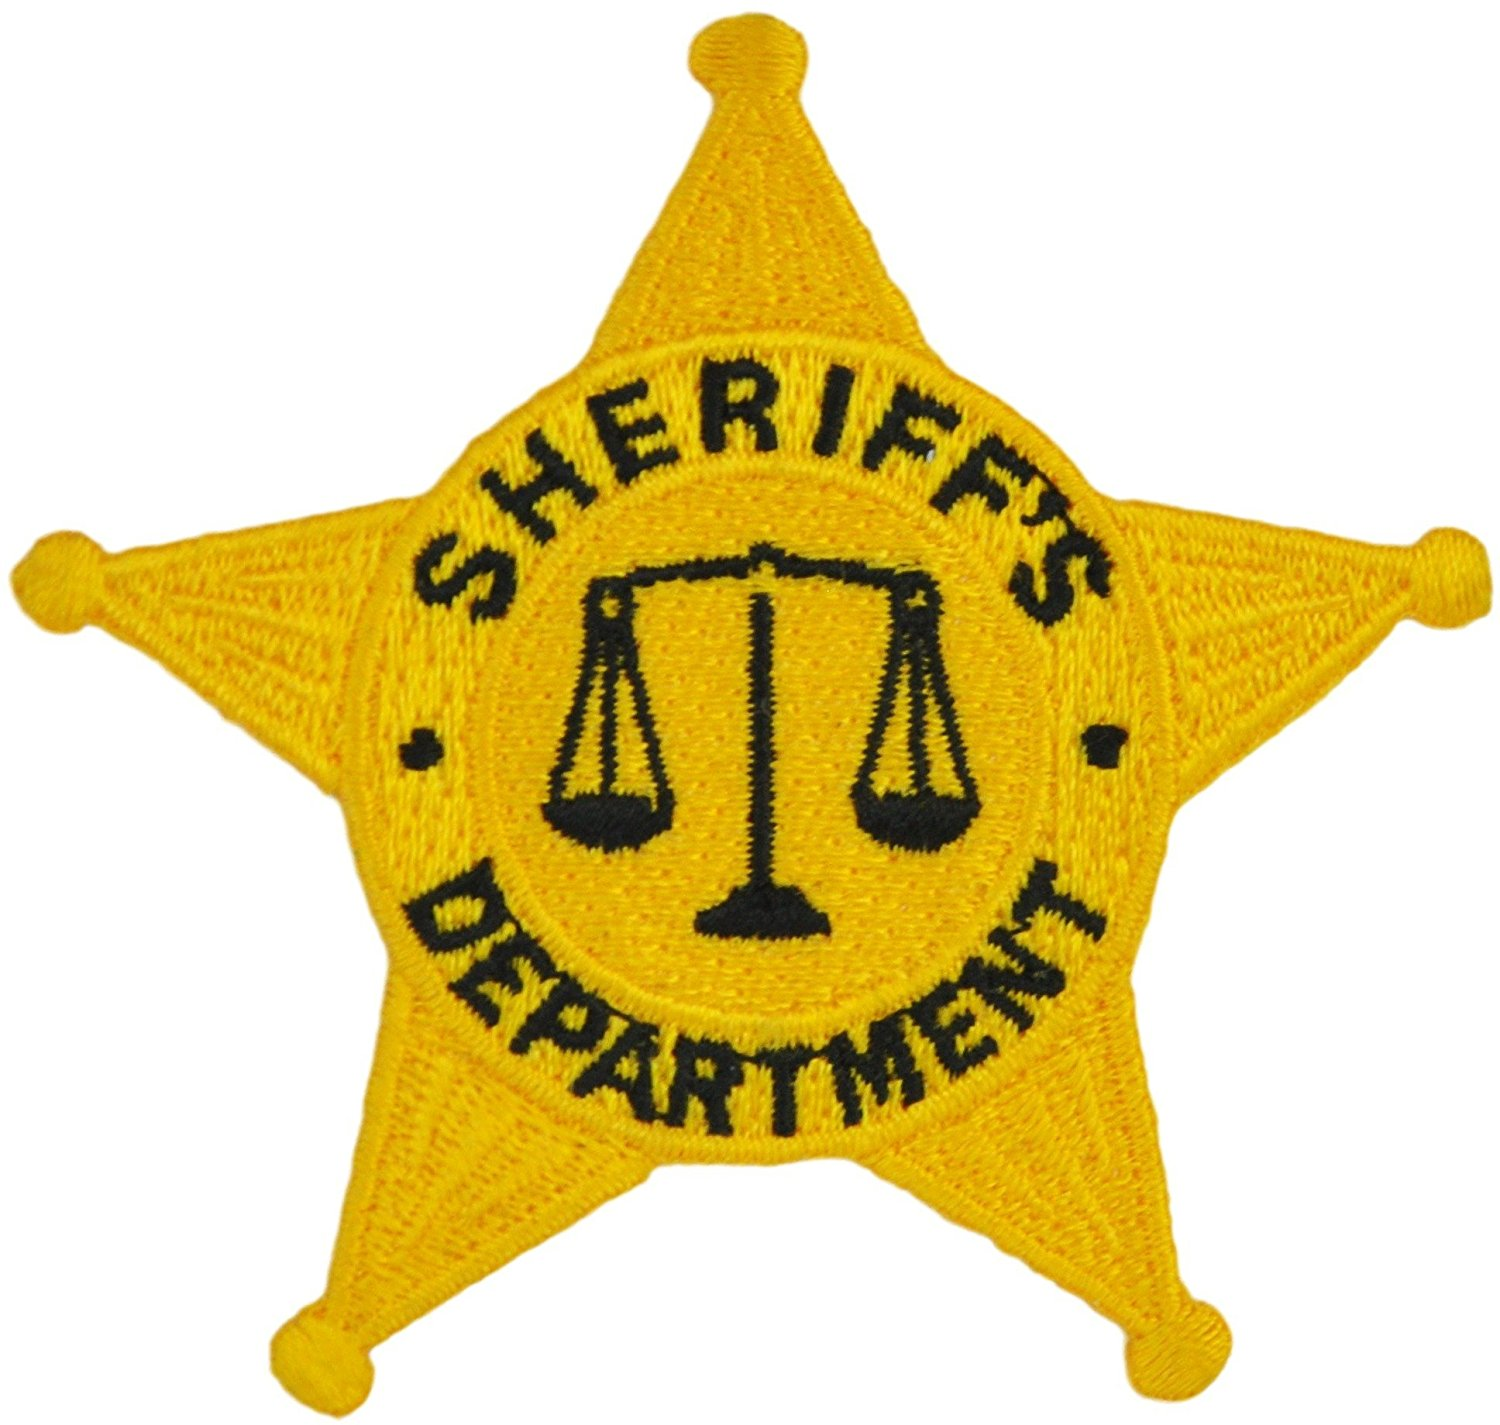 Tactical 365 Operation First Response 5 Point Star Sheriff Duty Emblem Patch - Silver